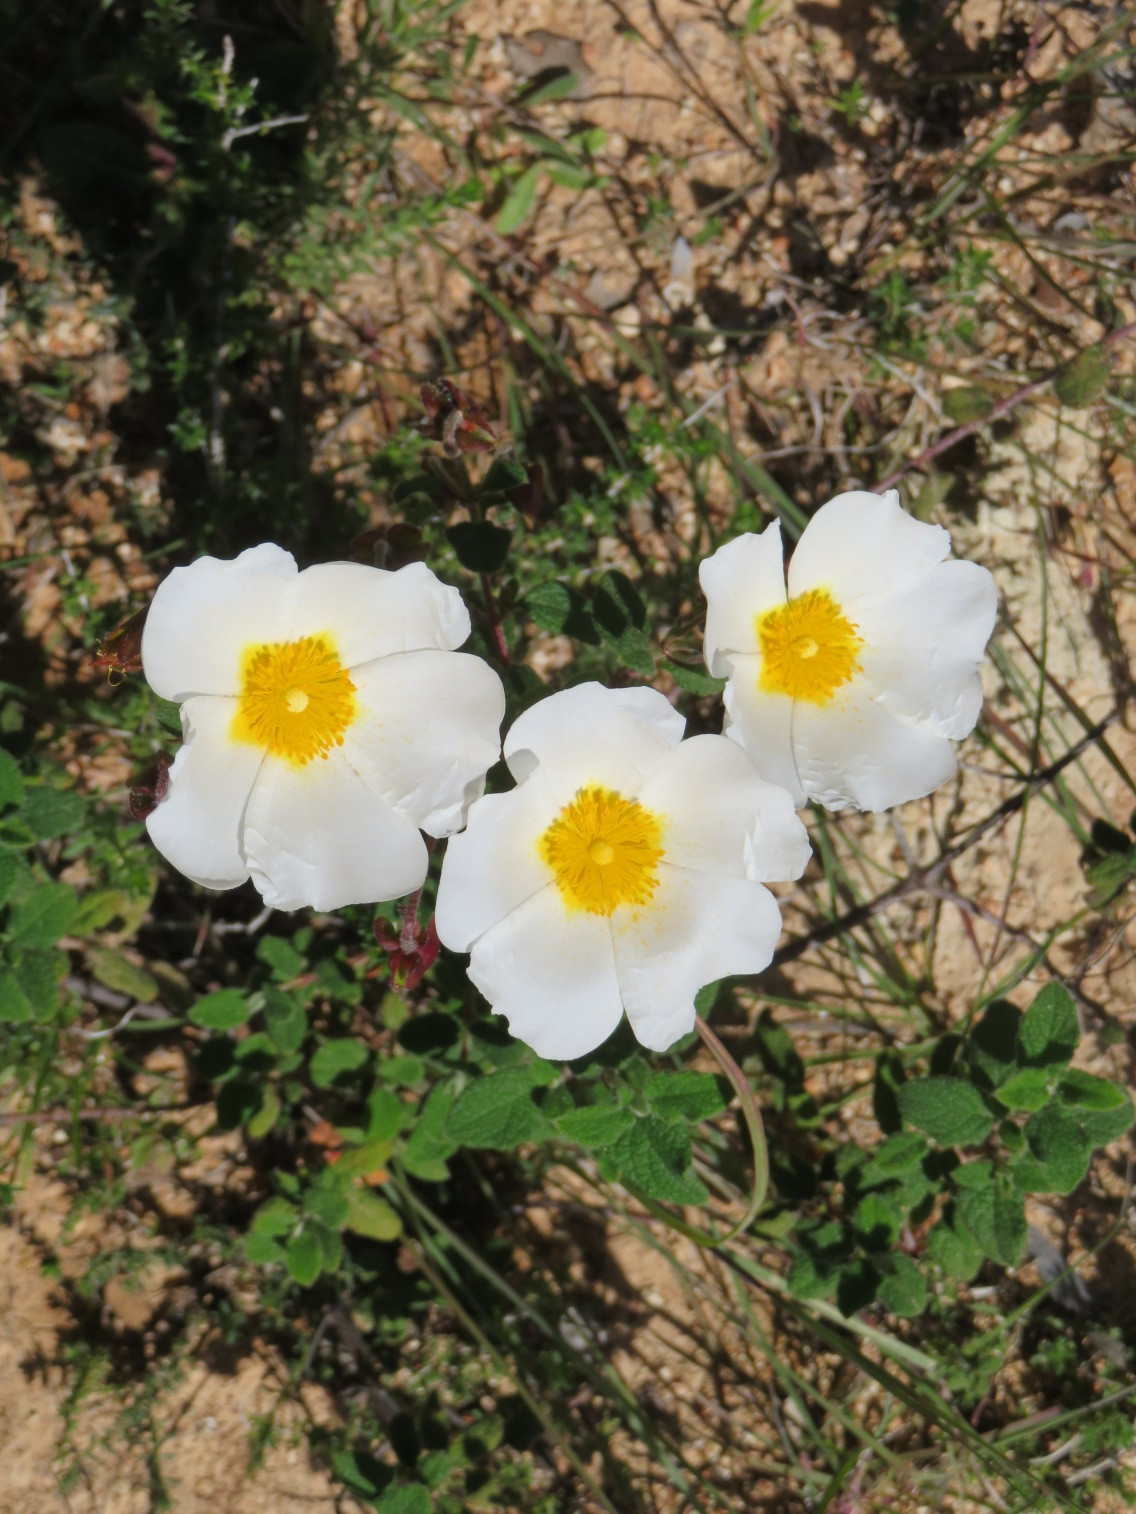 And these glorious white cistus............delicate looking but clearly a hardy plant.